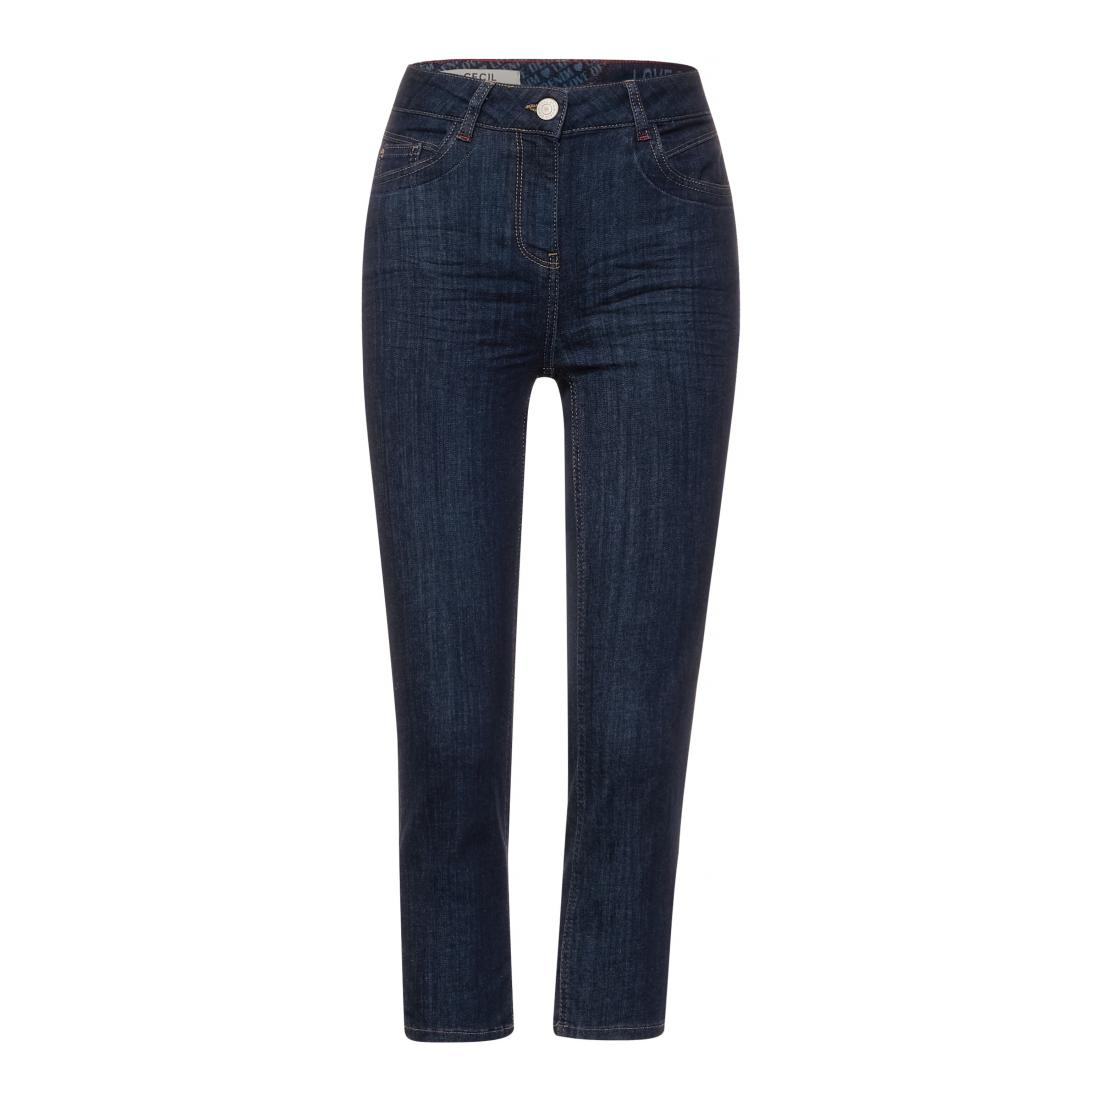 Cecil Jeans Damen Style NOS Toronto Rinsed